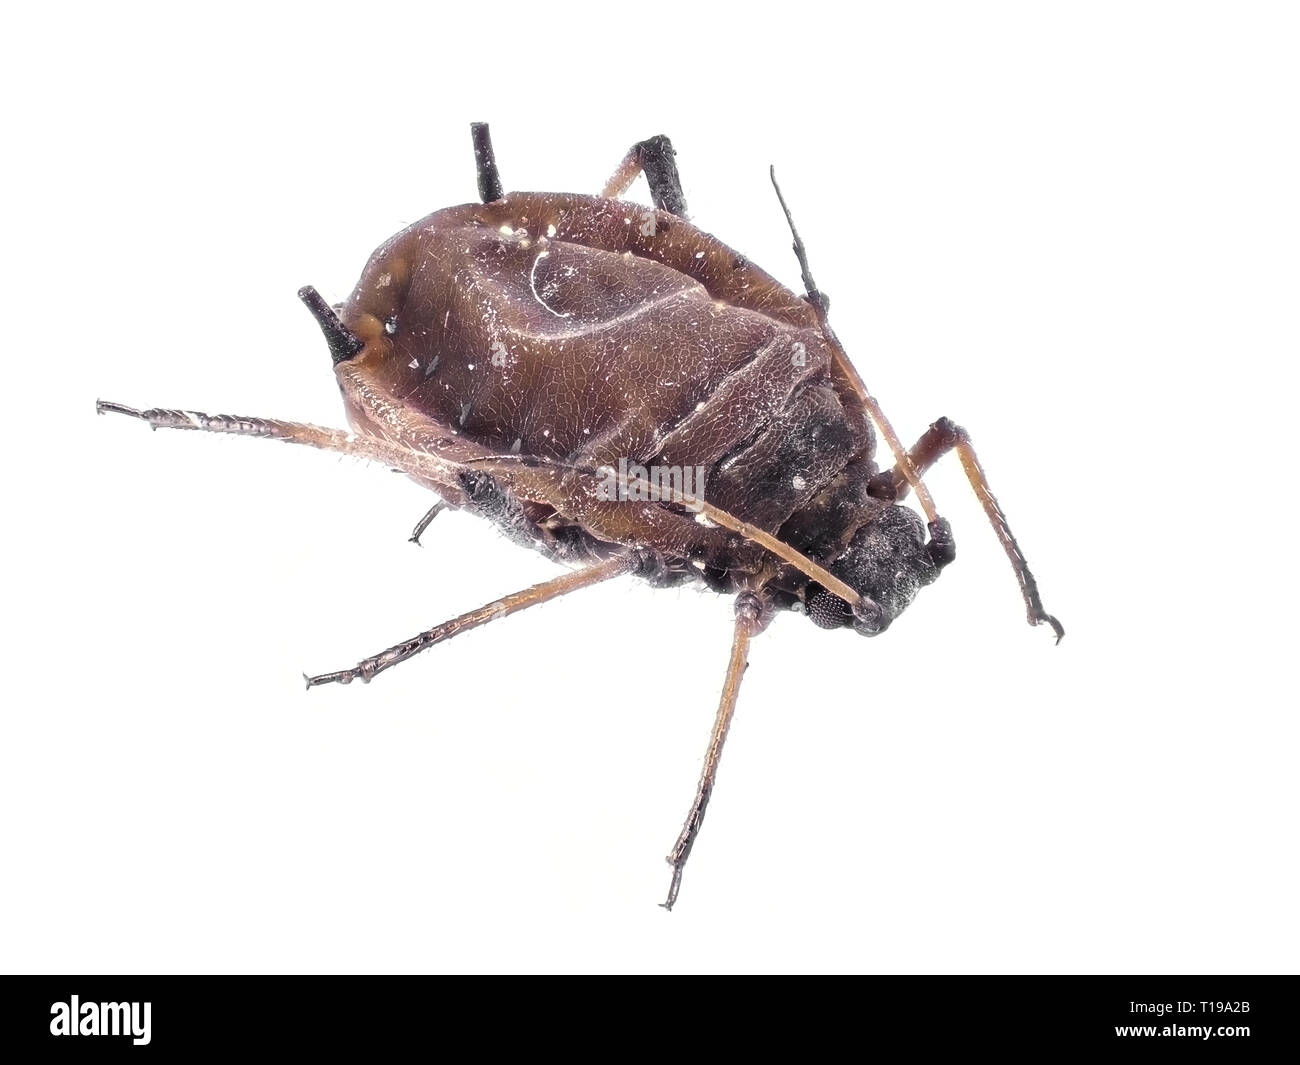 Small aphid, body length about 1.6mm - Stock Image